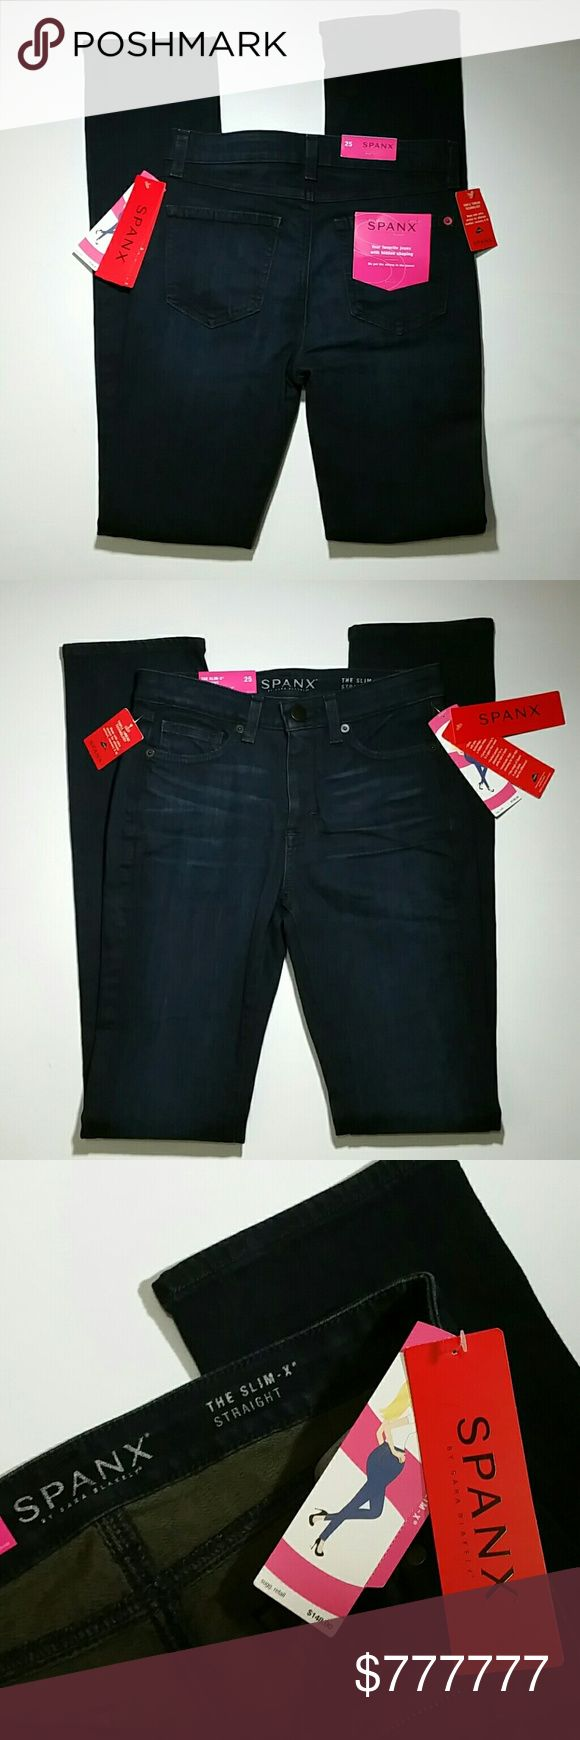 NWT Spanx size 25 Slim - X Dark Wash NWT NEW! Awesome slimming dark wash jeans by Spanx! Slim fit. Measurements included in pictures SPANX Jeans Skinny